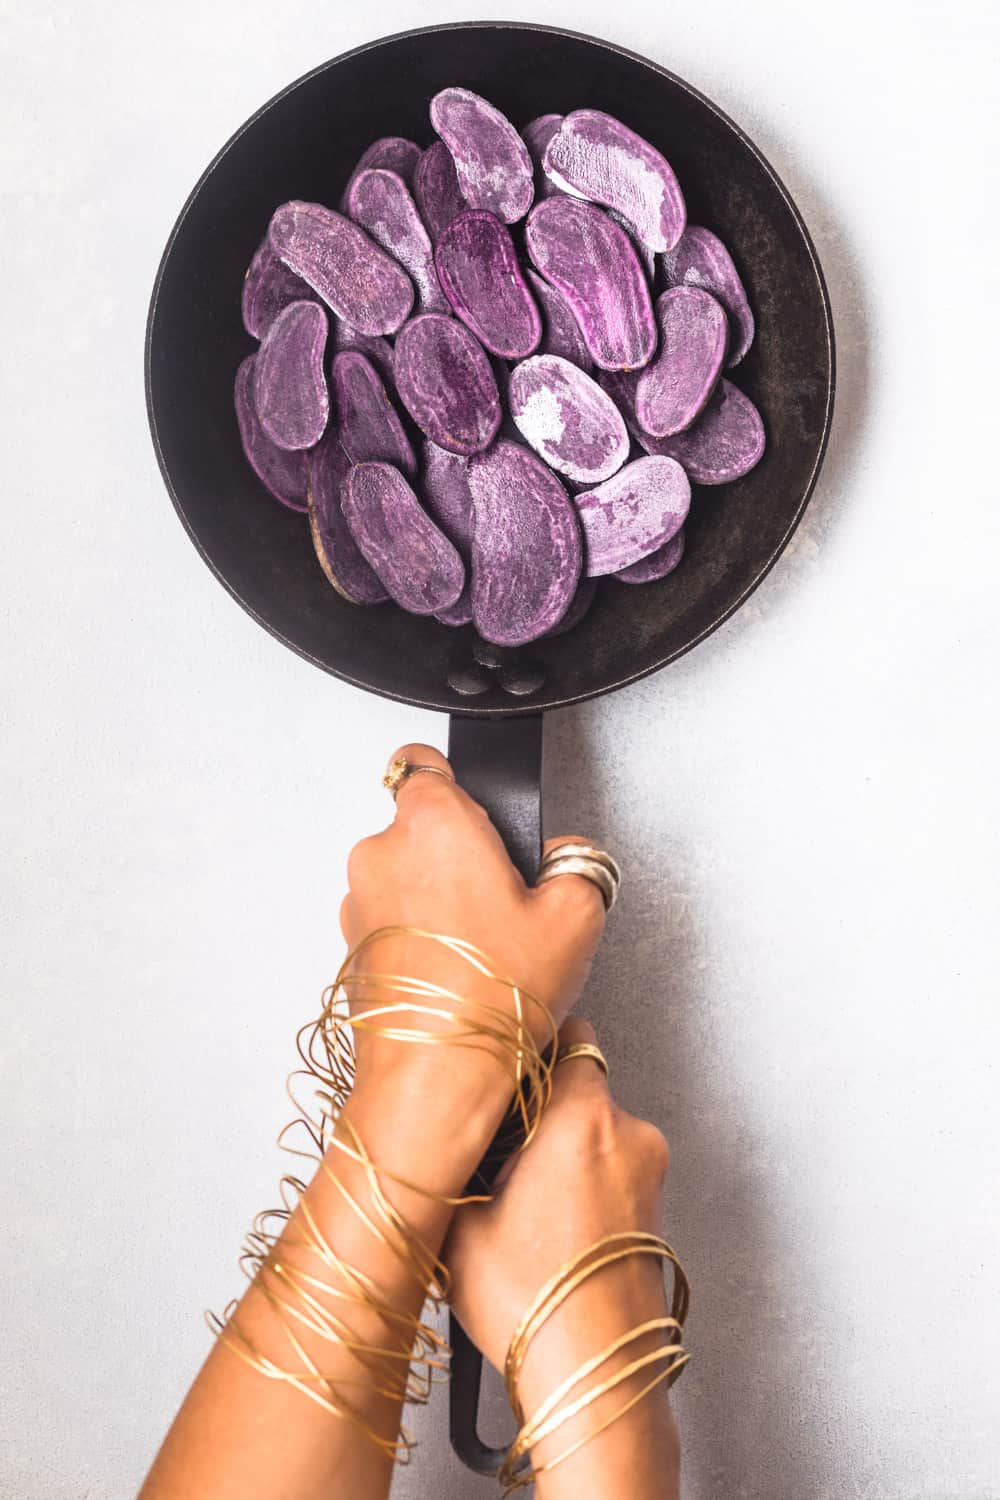 Daniela Gerson holding a cast iron skillet with purple potatoes cut in half on a white background; overhead shot.